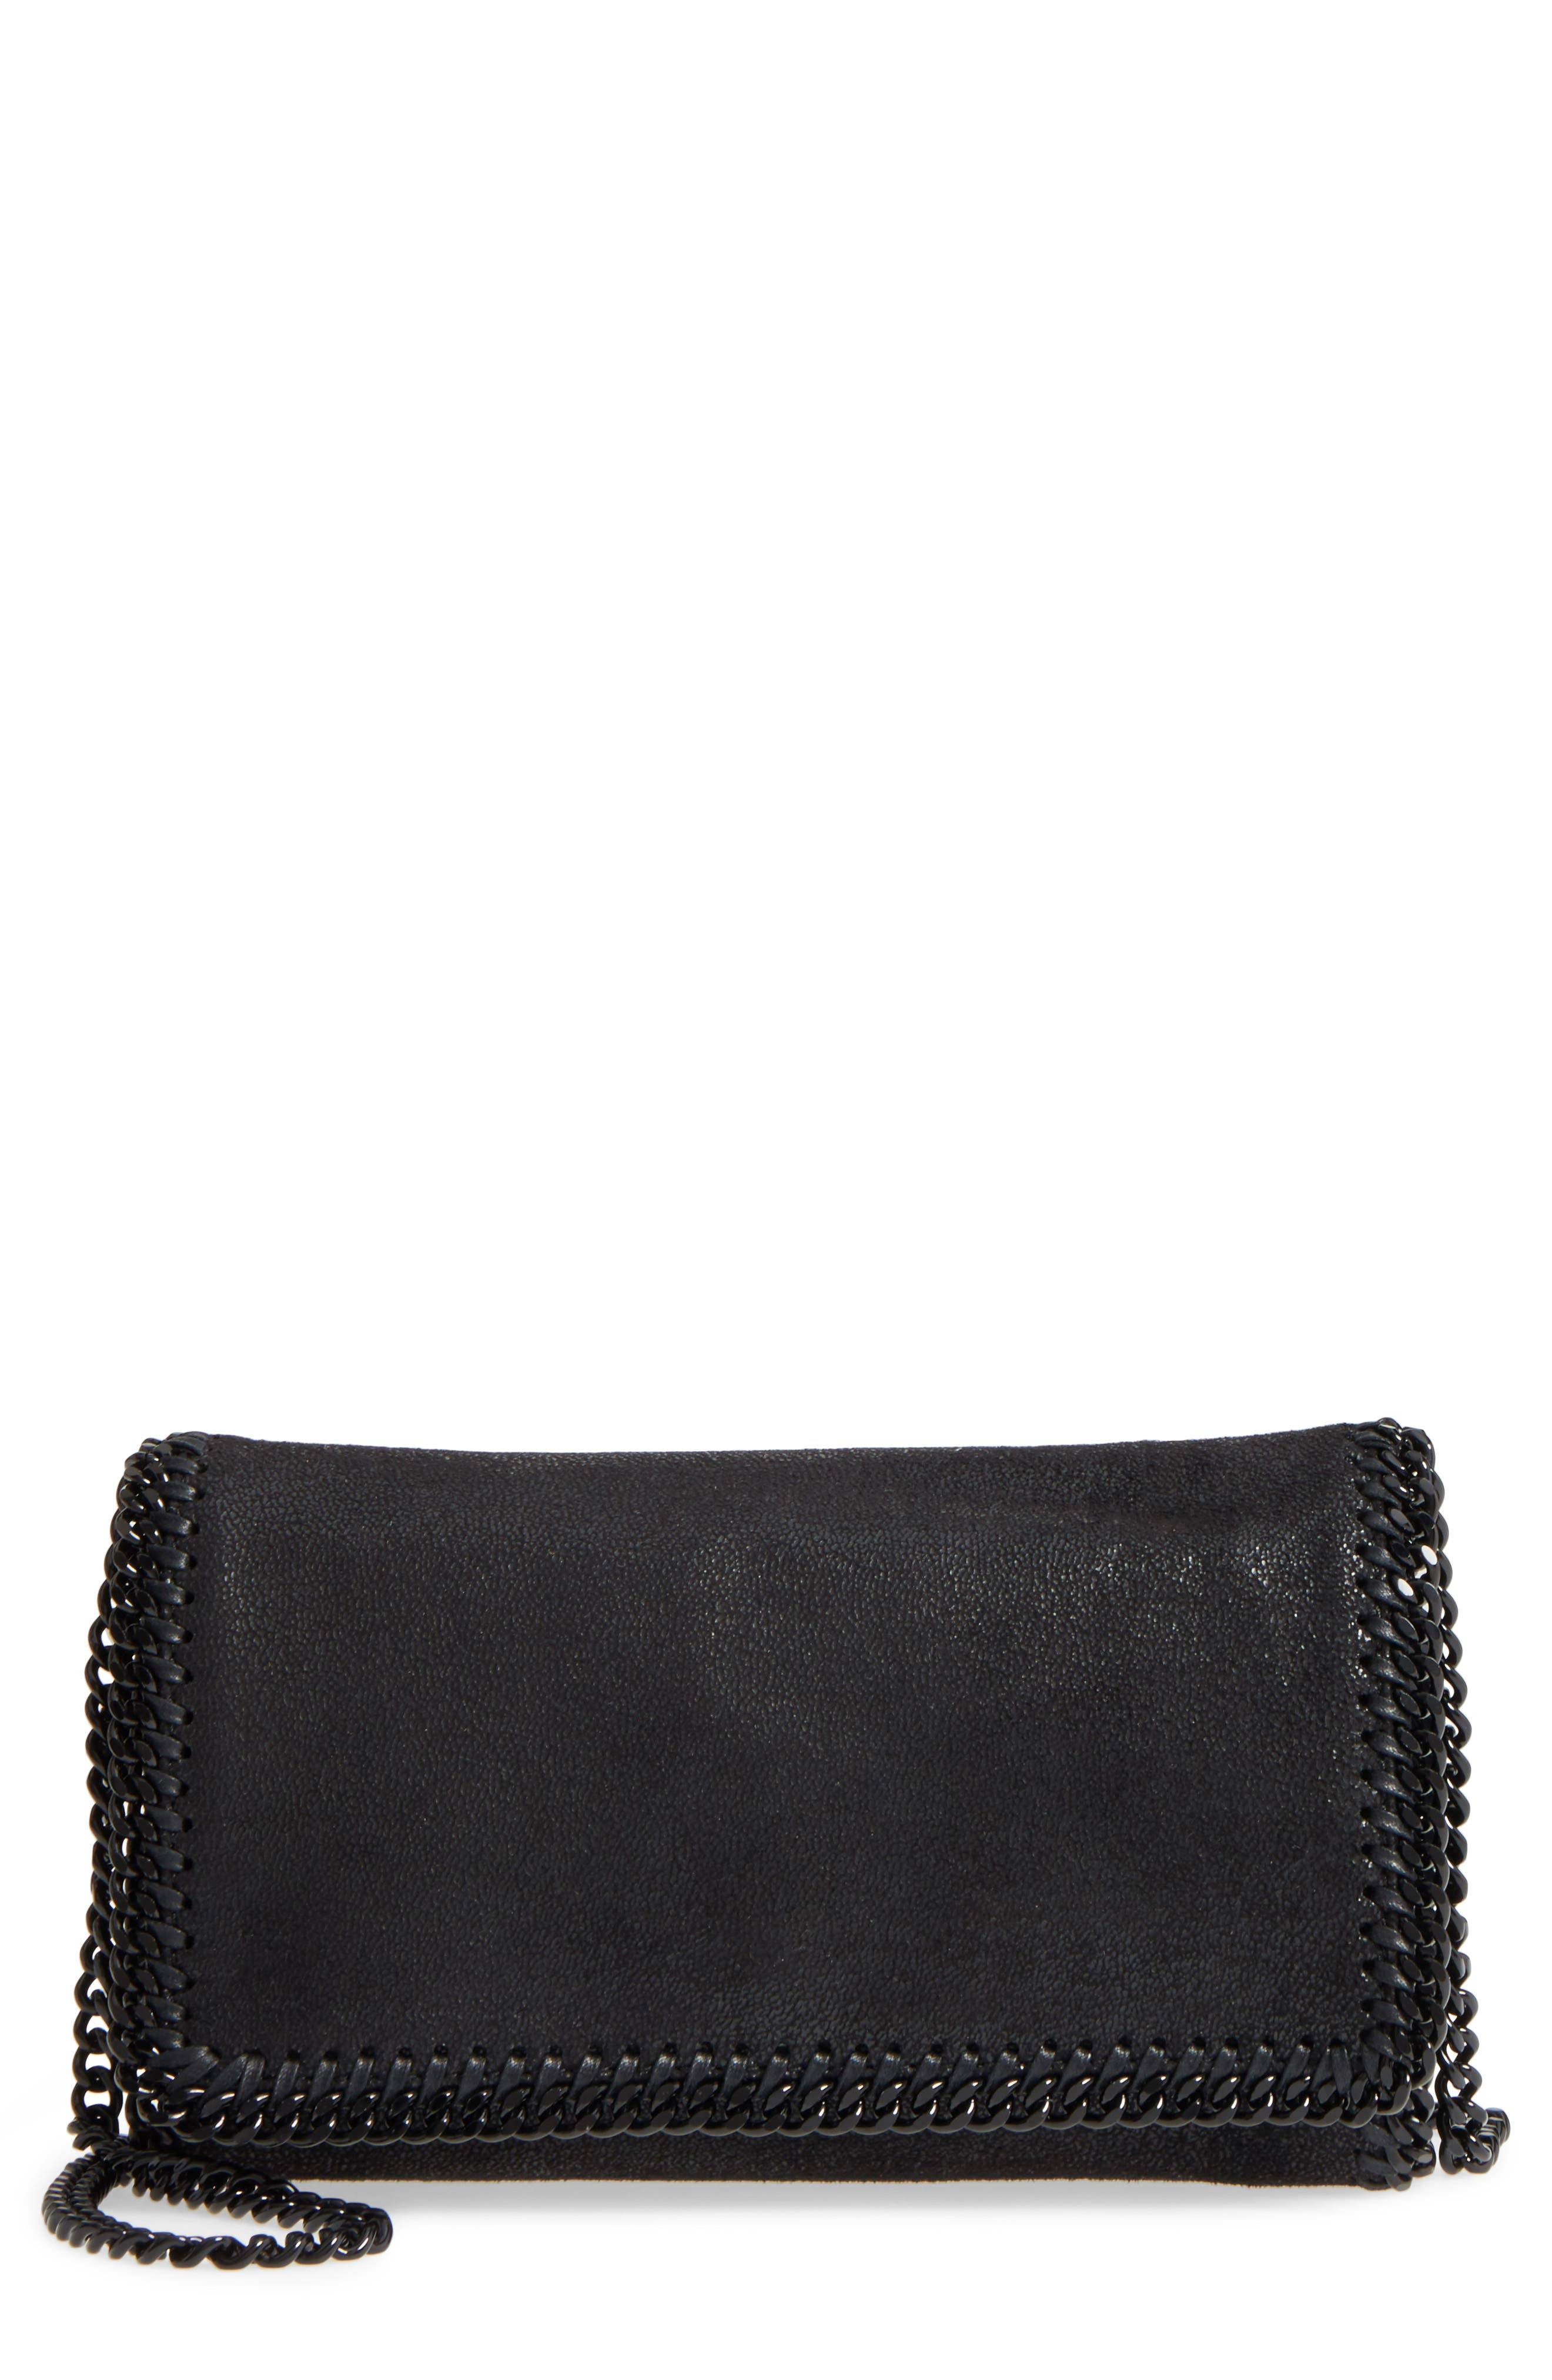 STELLA MCCARTNEY Falabella Shaggy Deer Faux Leather Clutch, Main, color, BLACK OUT